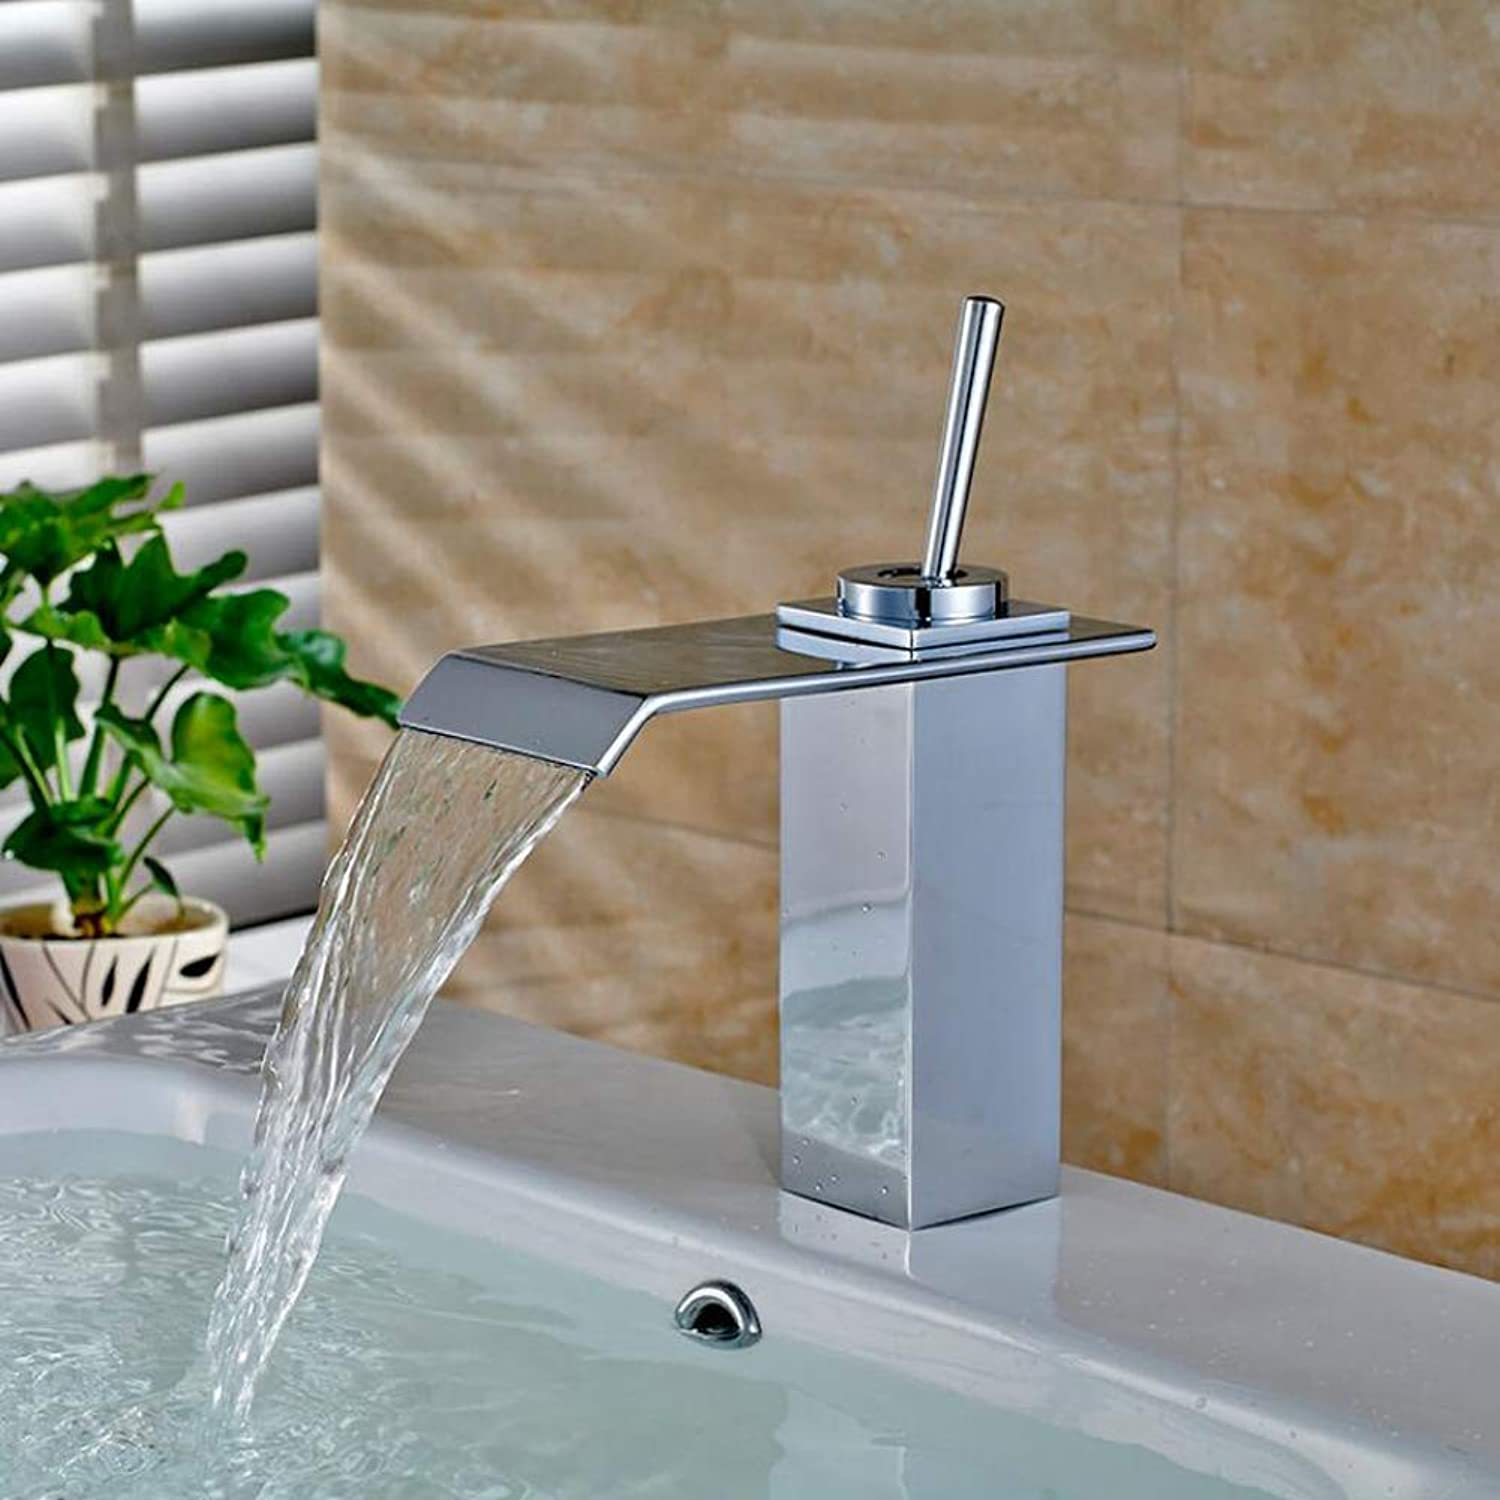 Flat mouth Square Waterfall Chrome Leadless Brass Faucet Bathroom Sink Hot Cold Taps Basin Mixer Tap,SilverWaterfallFaucet